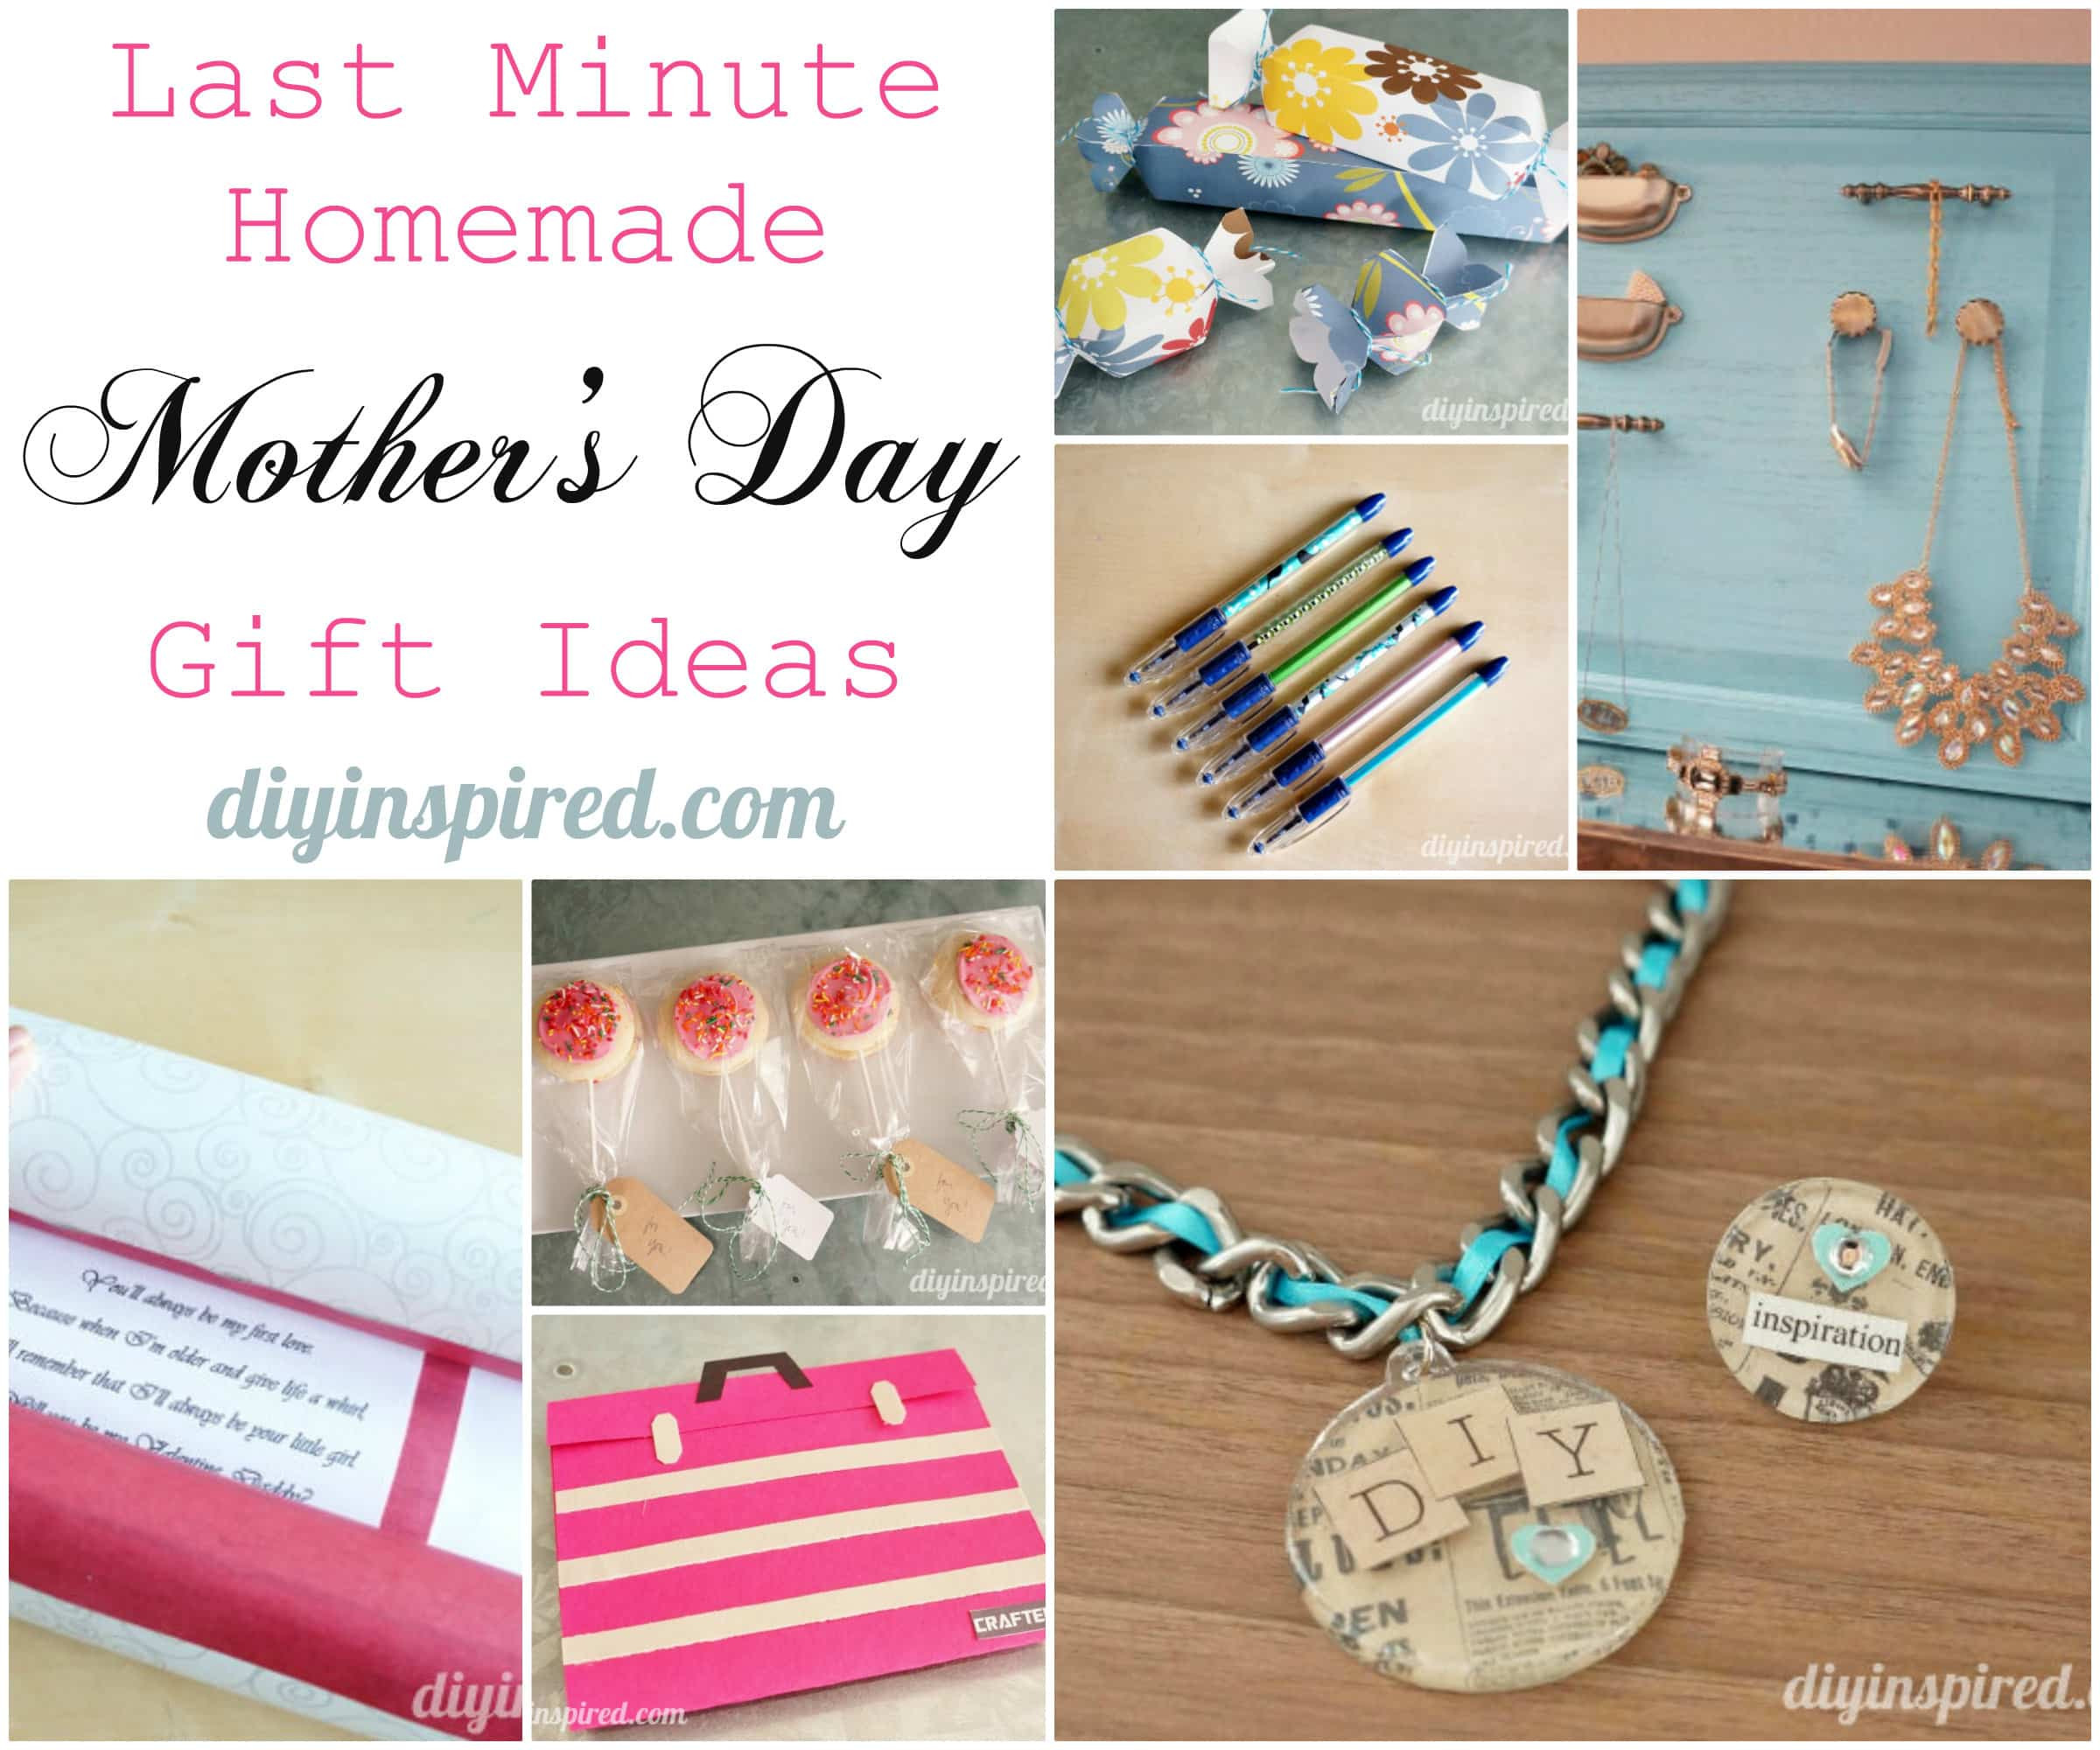 Last Minute Birthday Gifts For Mom  LAST MINUTE BIRTHDAY GIFTS FOR GRANDMA Wroc awski